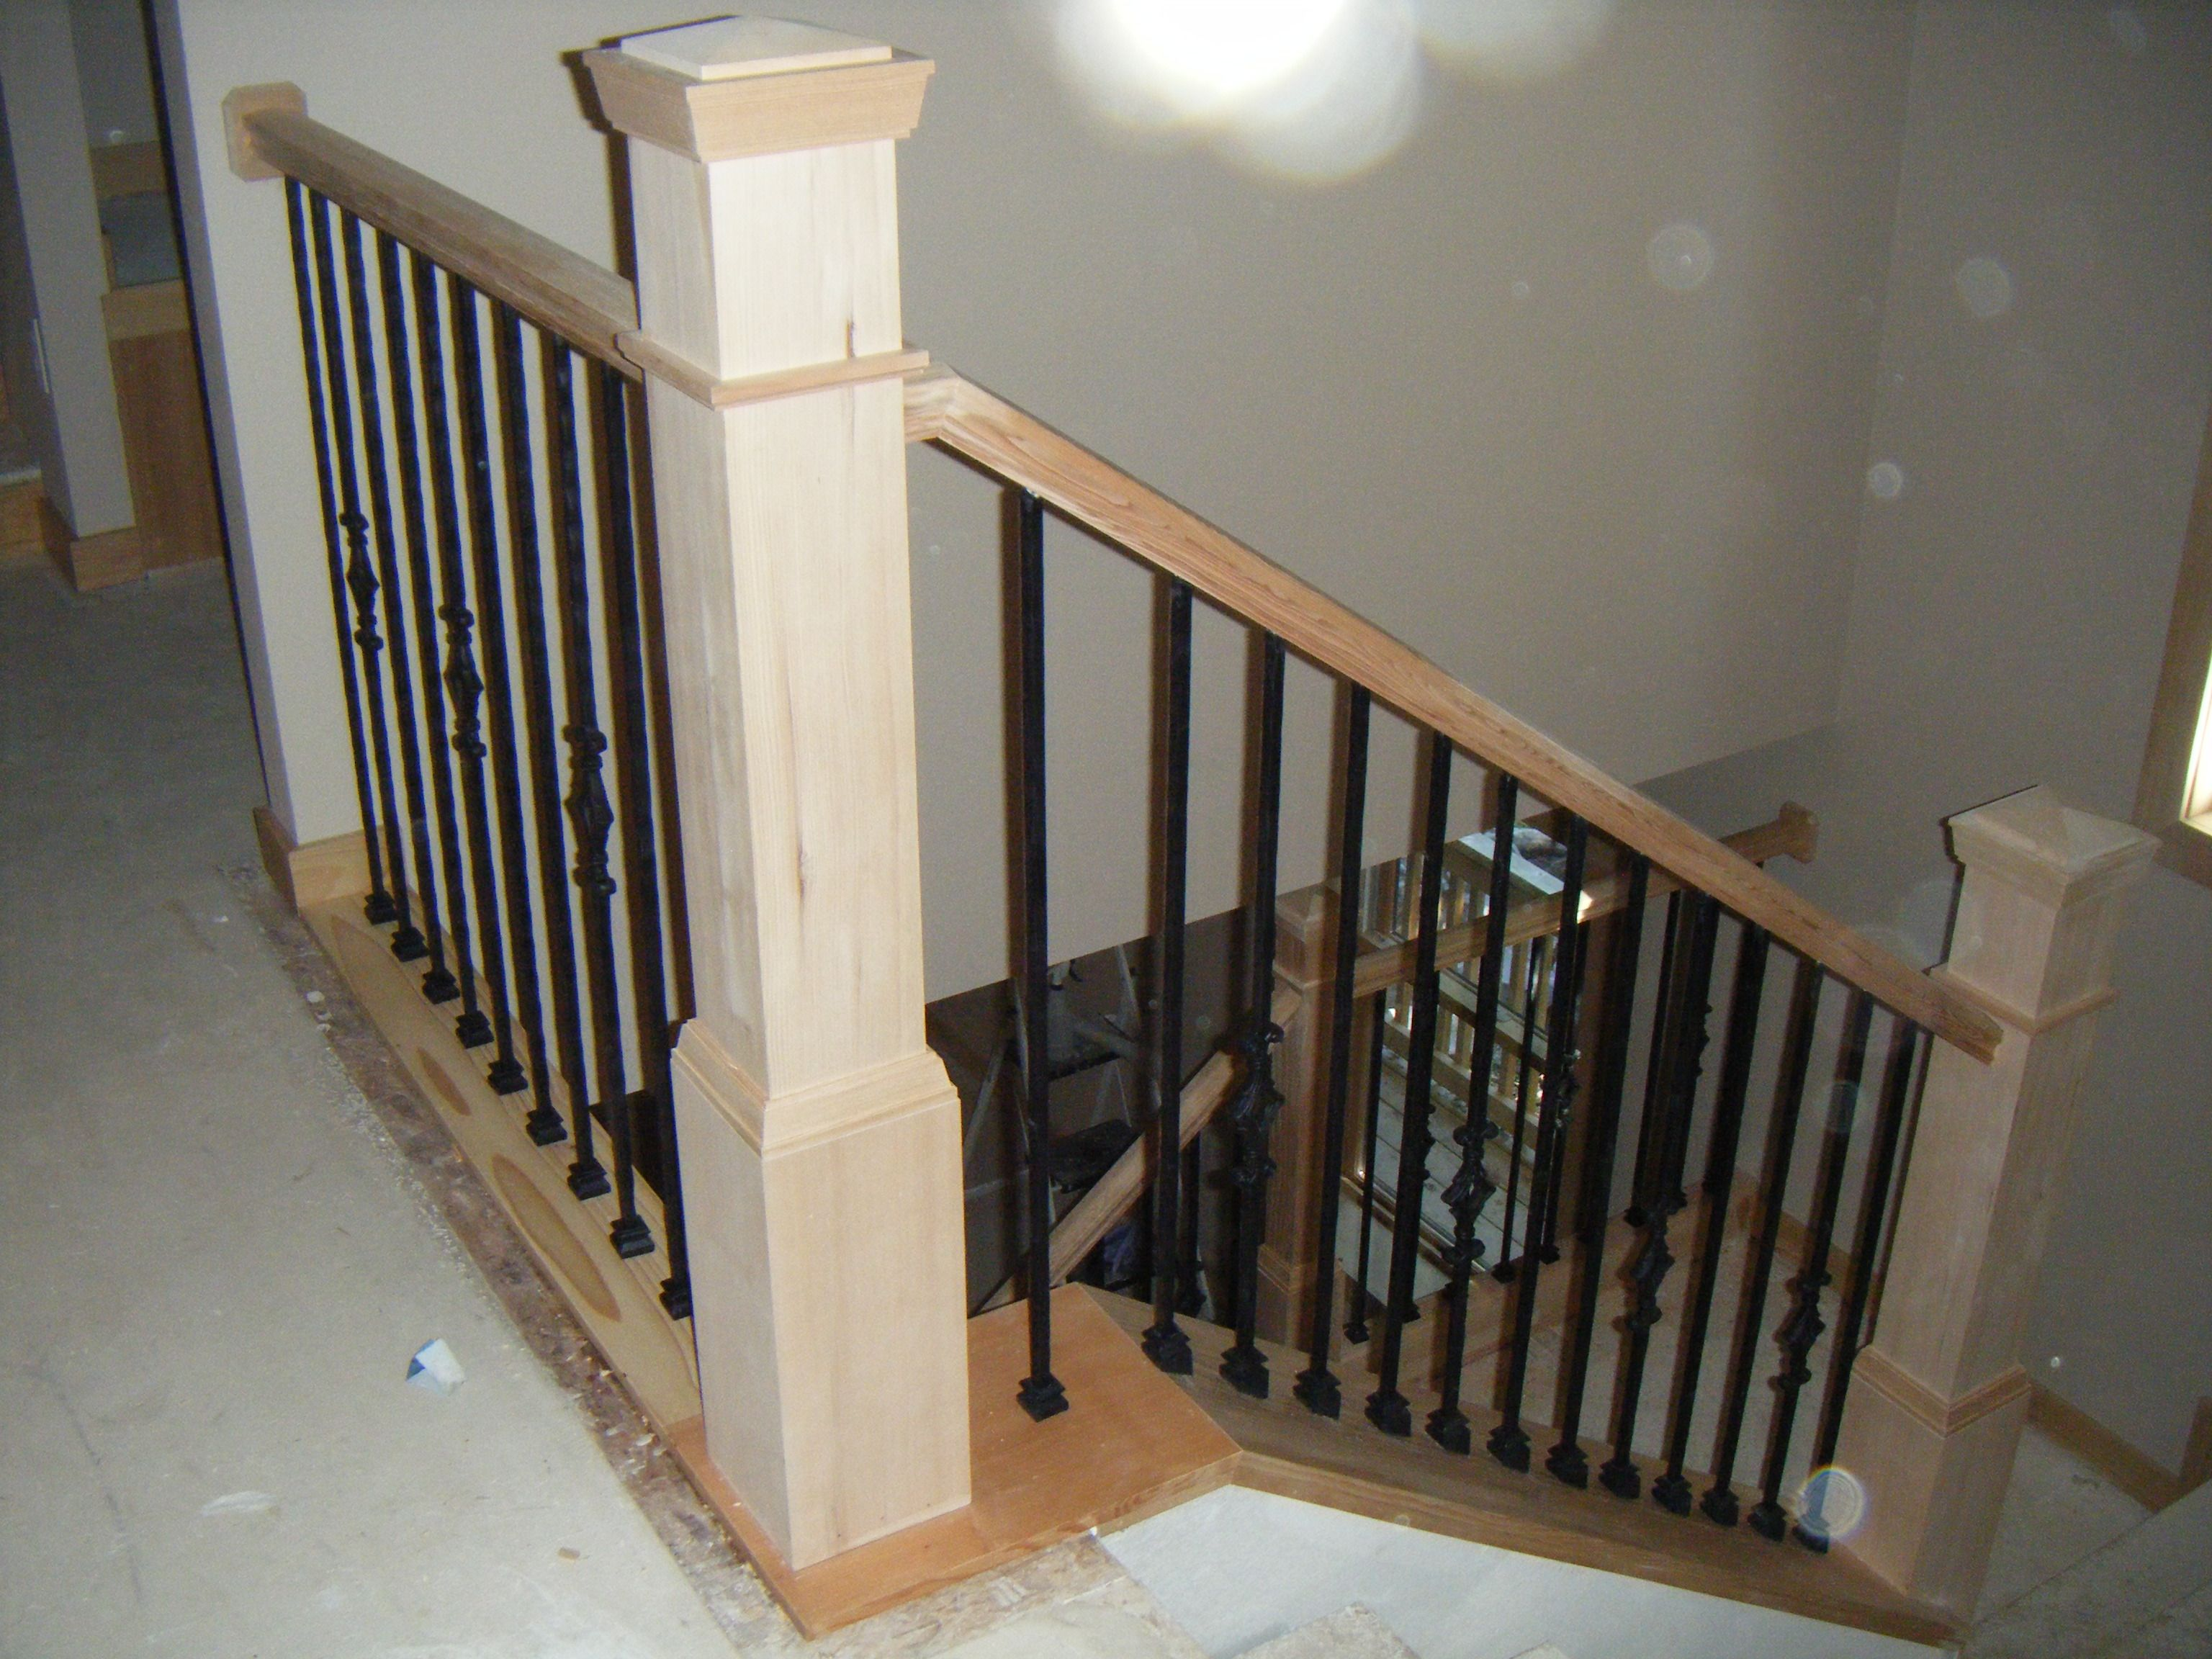 Wooden Stairs Rail Base Stair Railing Newles Posts